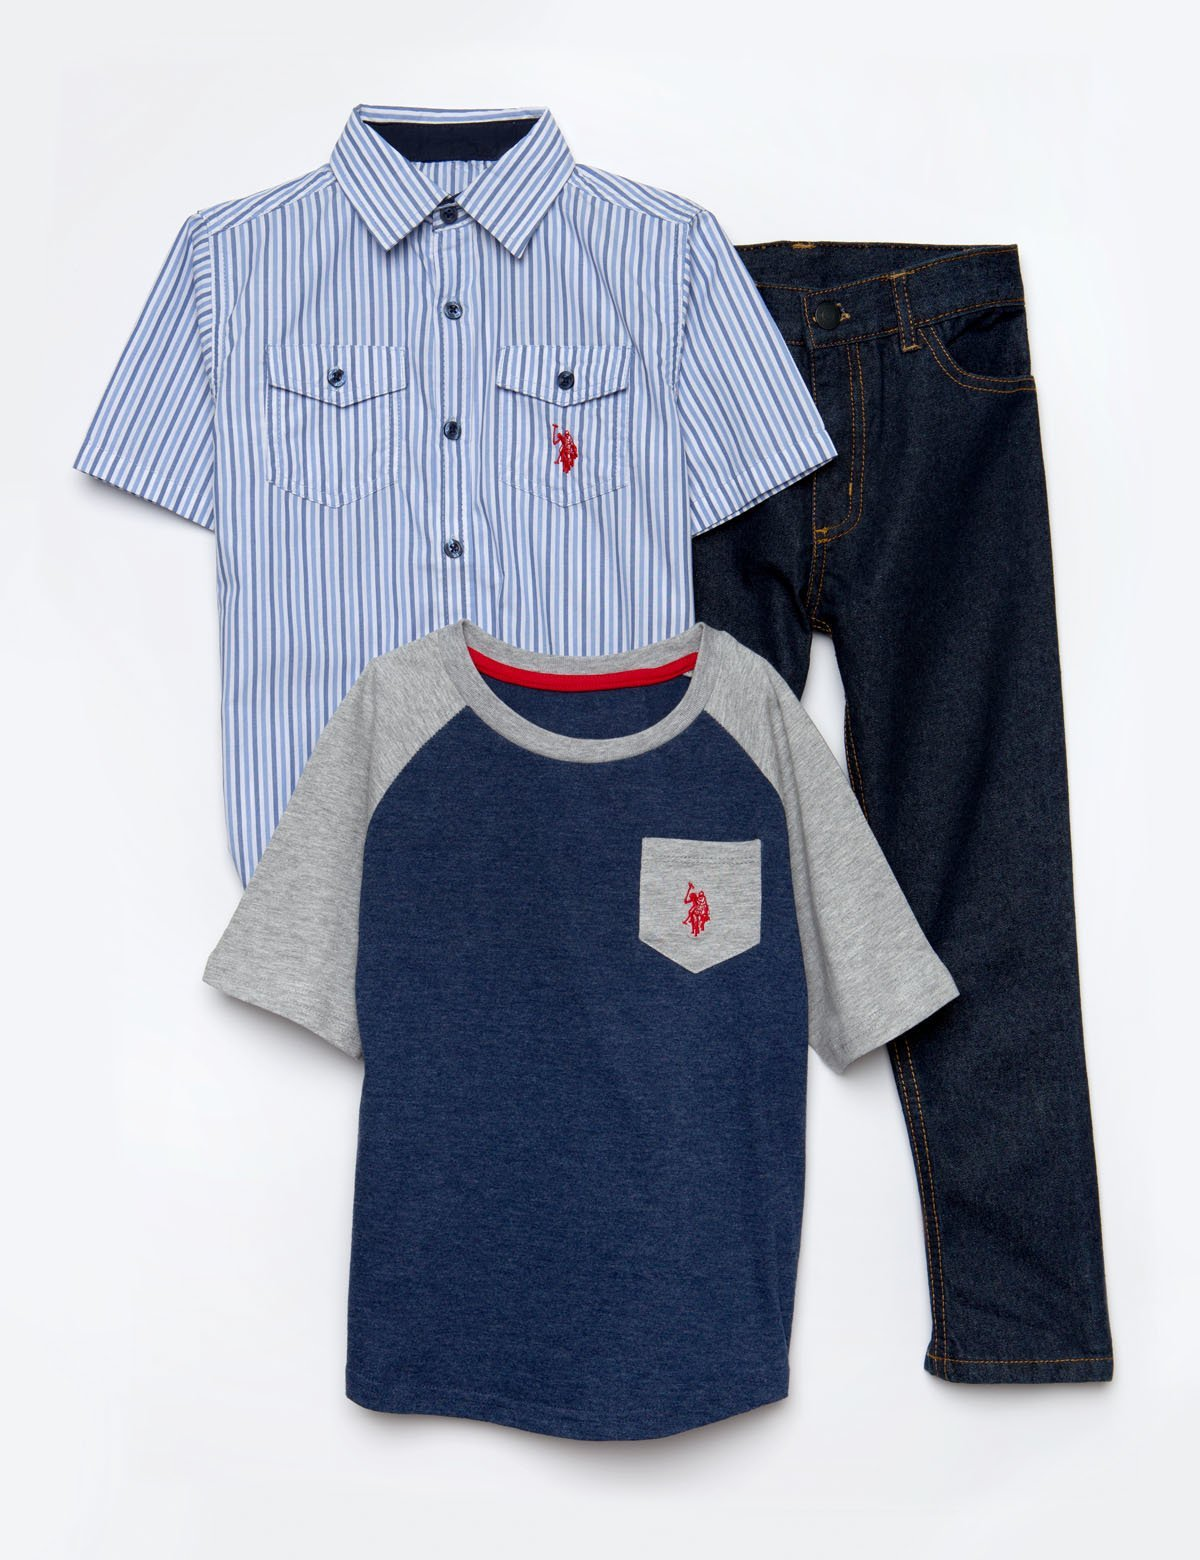 BOYS 3 PIECE SET - SHIRT, TEE & JEANS - U.S. Polo Assn.